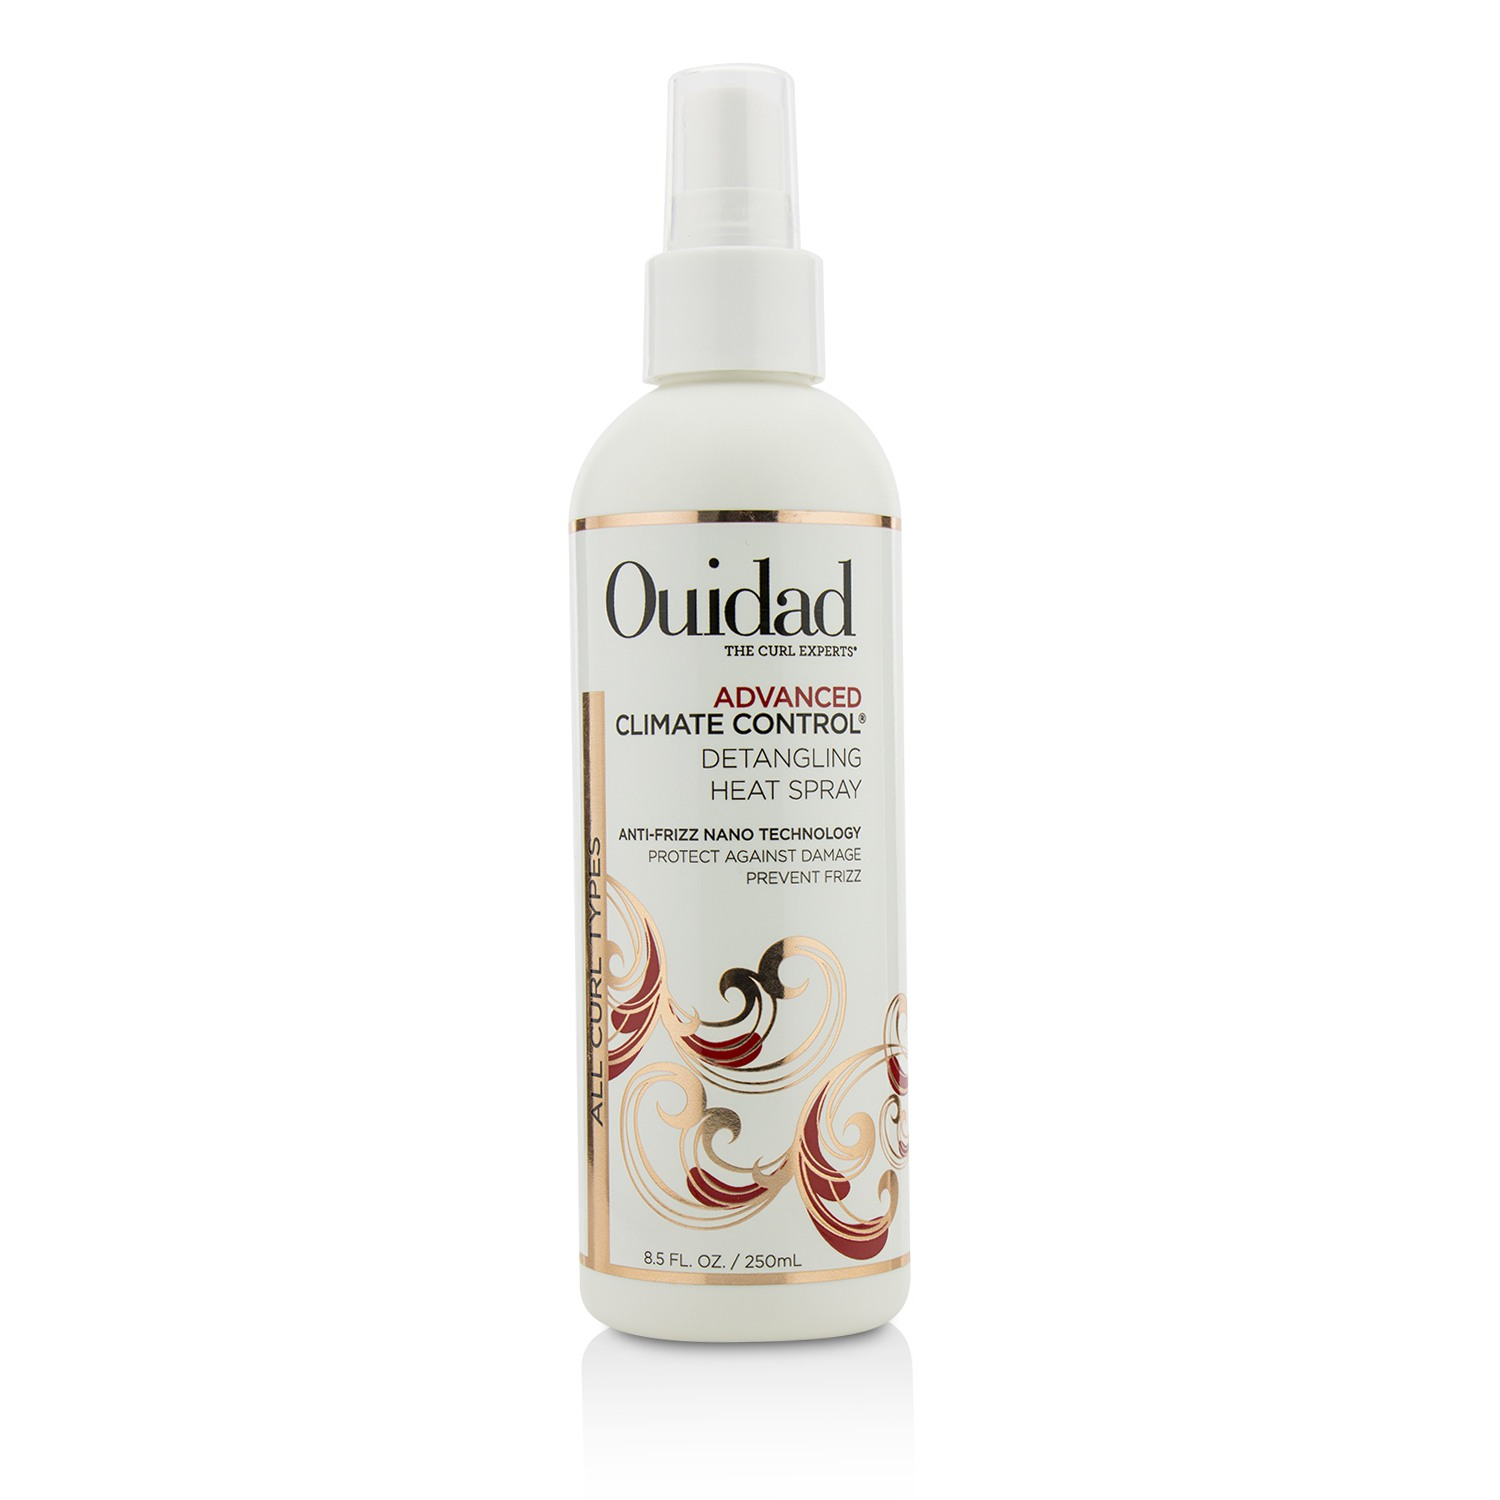 Advanced Climate Control Detangling Heat Spray (All Curl Types) Ouidad Image